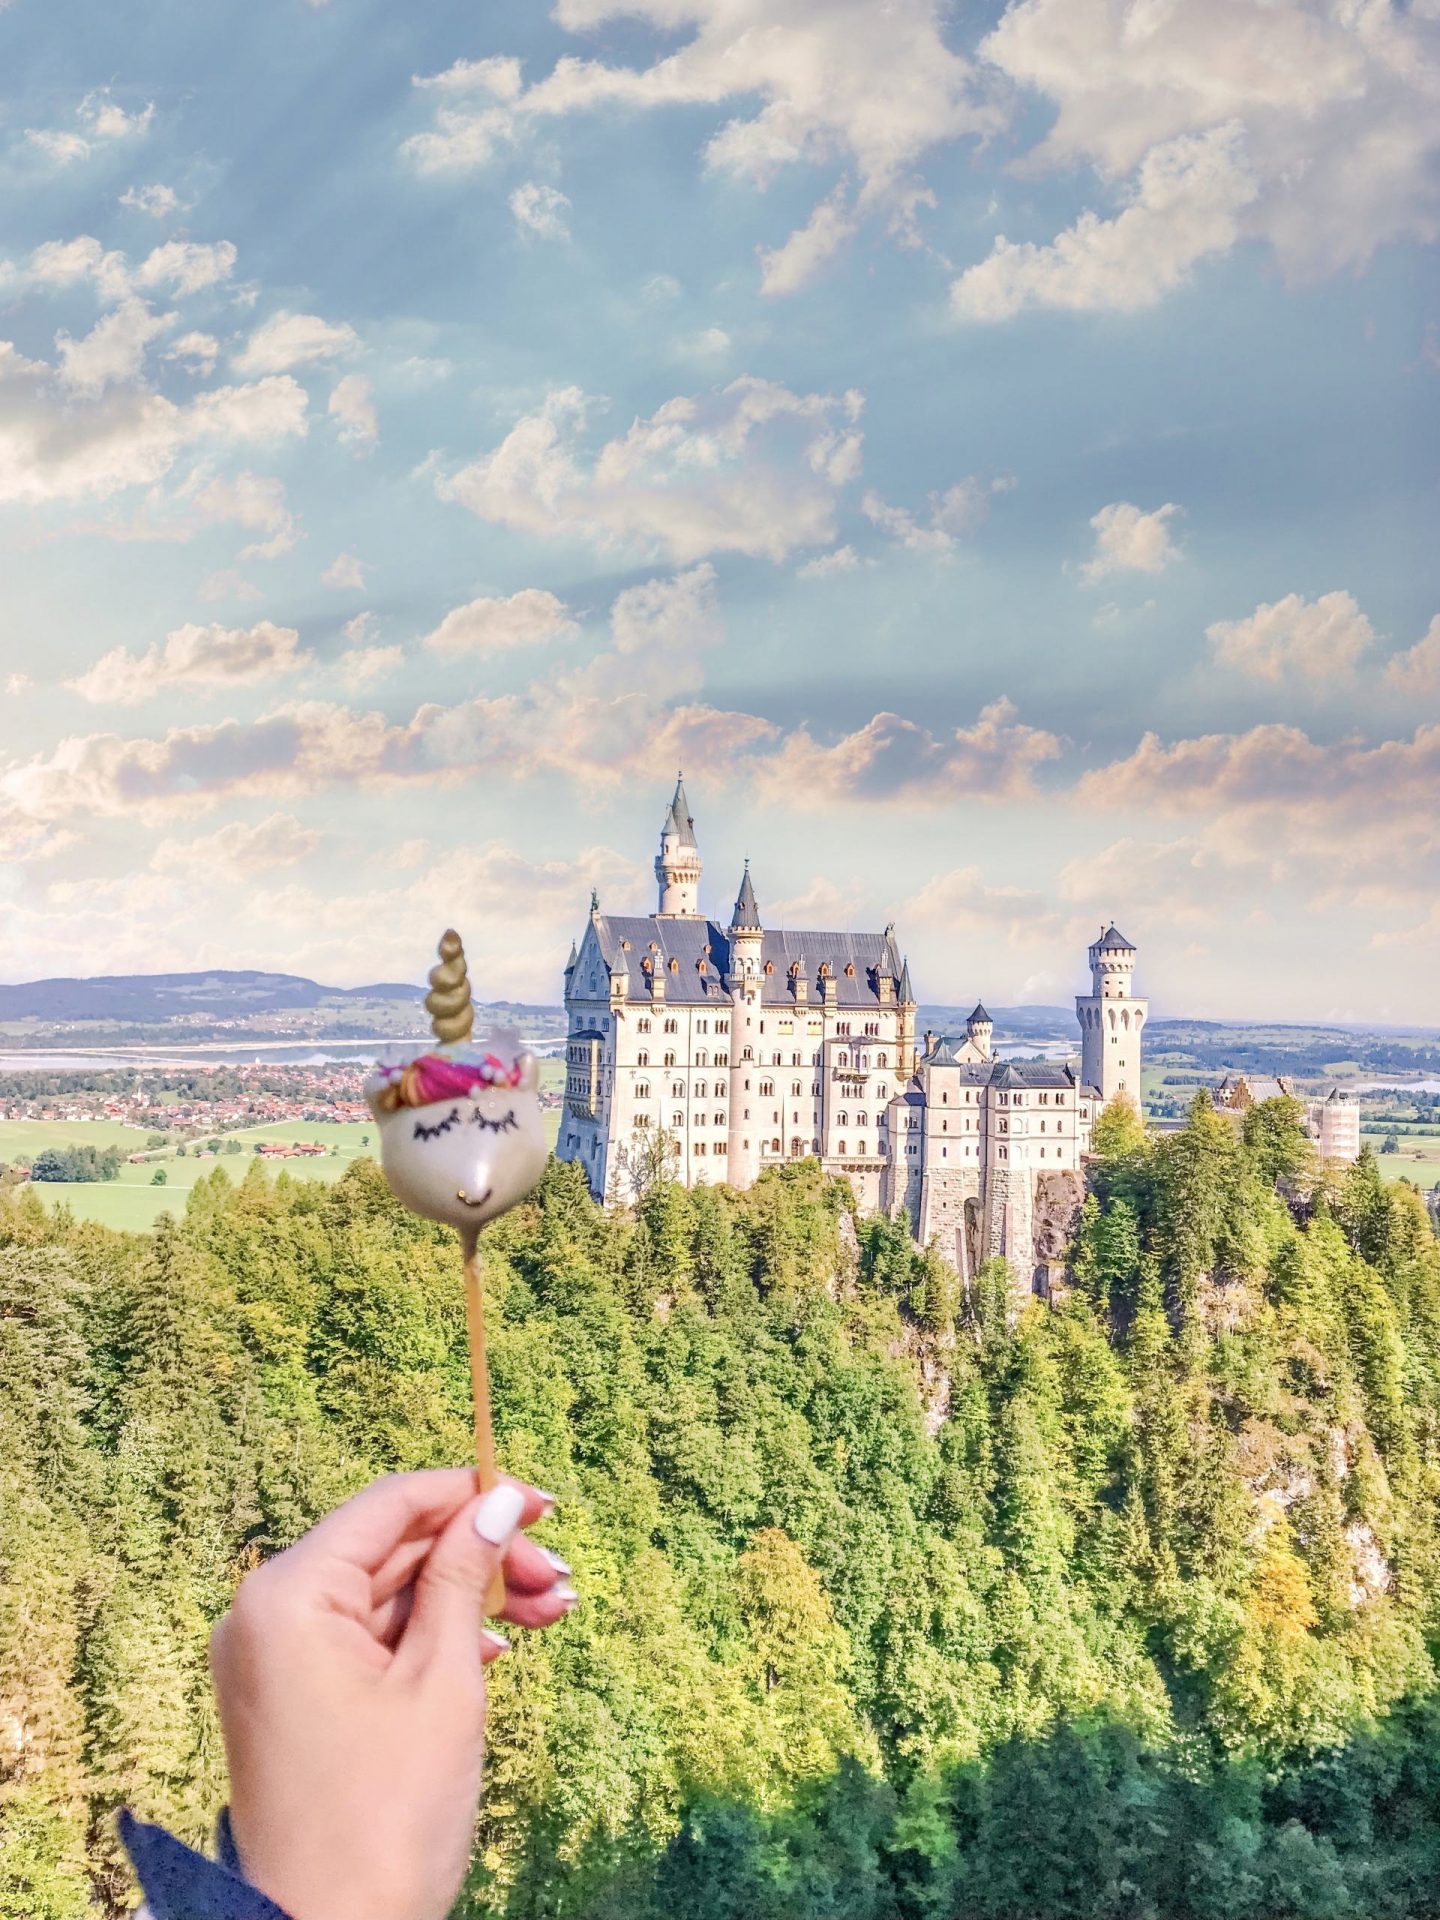 Bijuleni - Neuschwanstein Castle and unicorn cakepop. View from Mary's Bridge